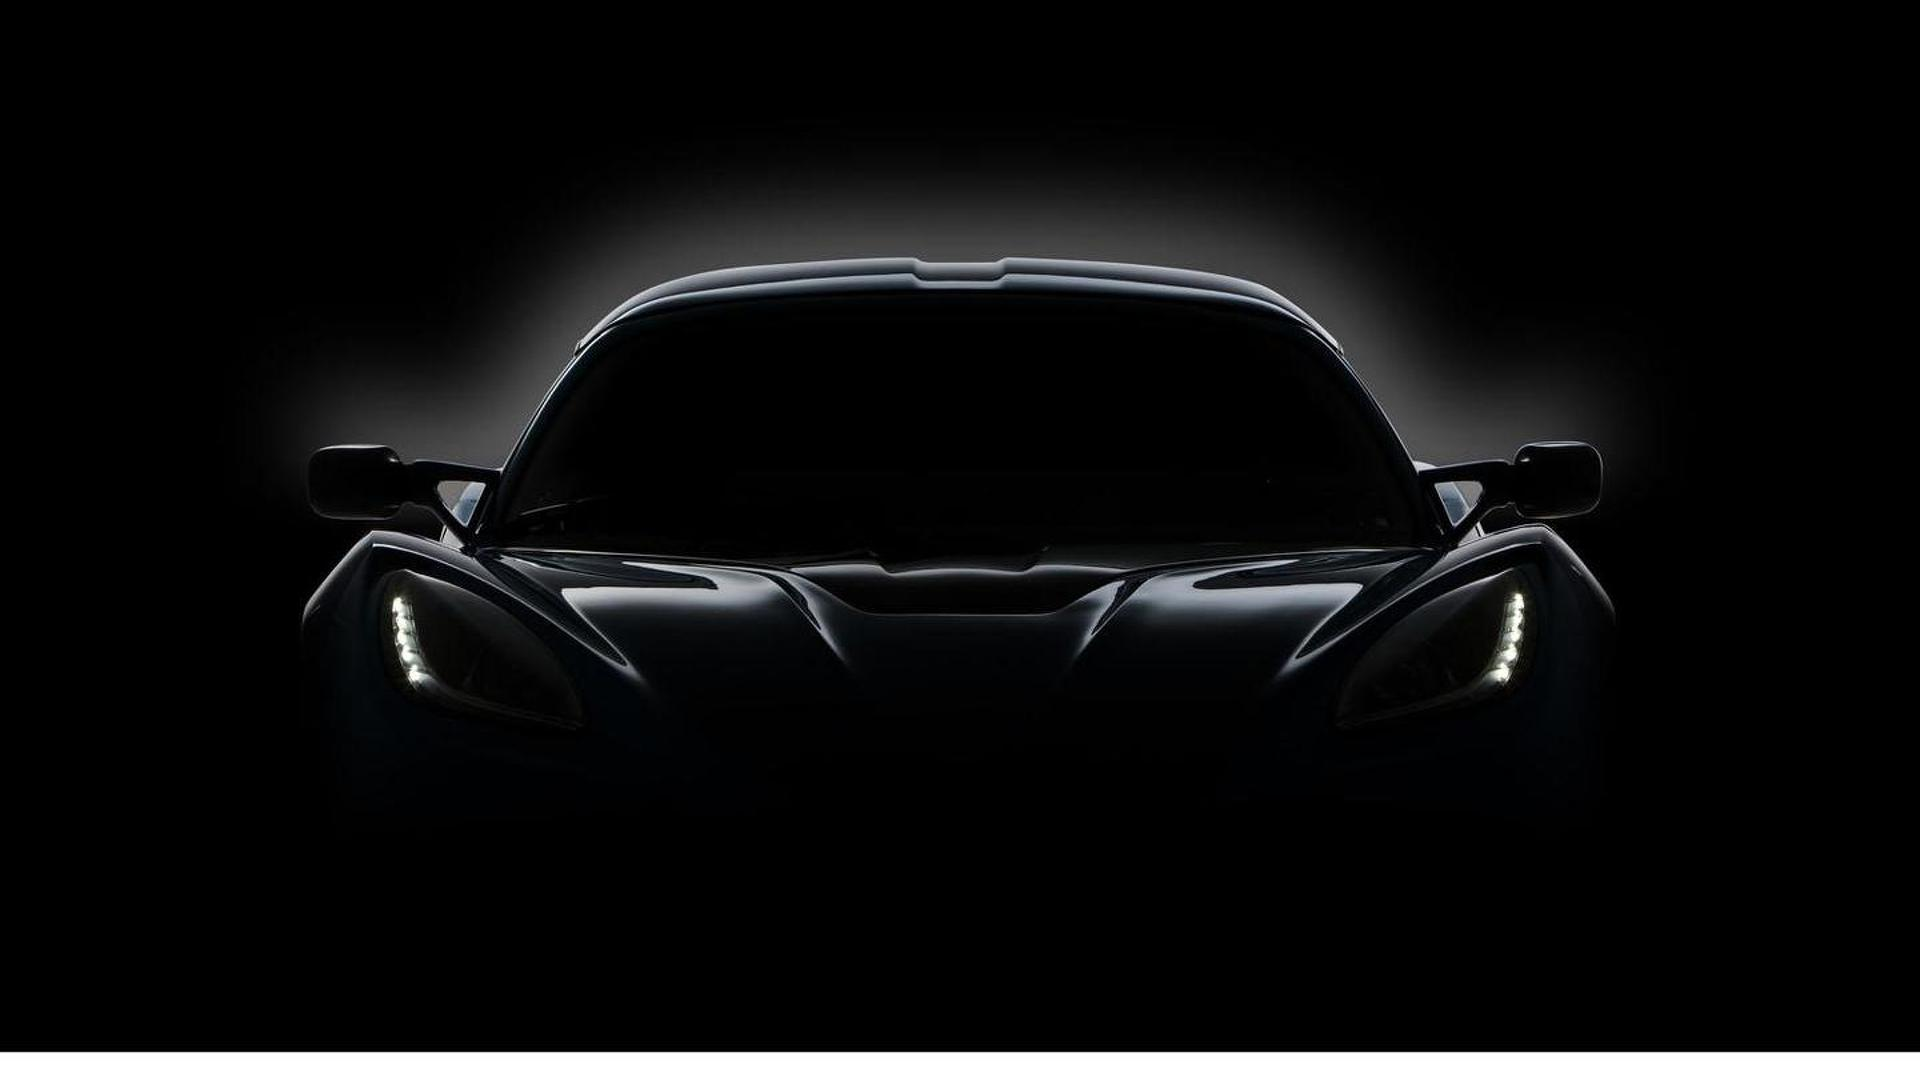 Detroit Electric reborn, teases their new sports car